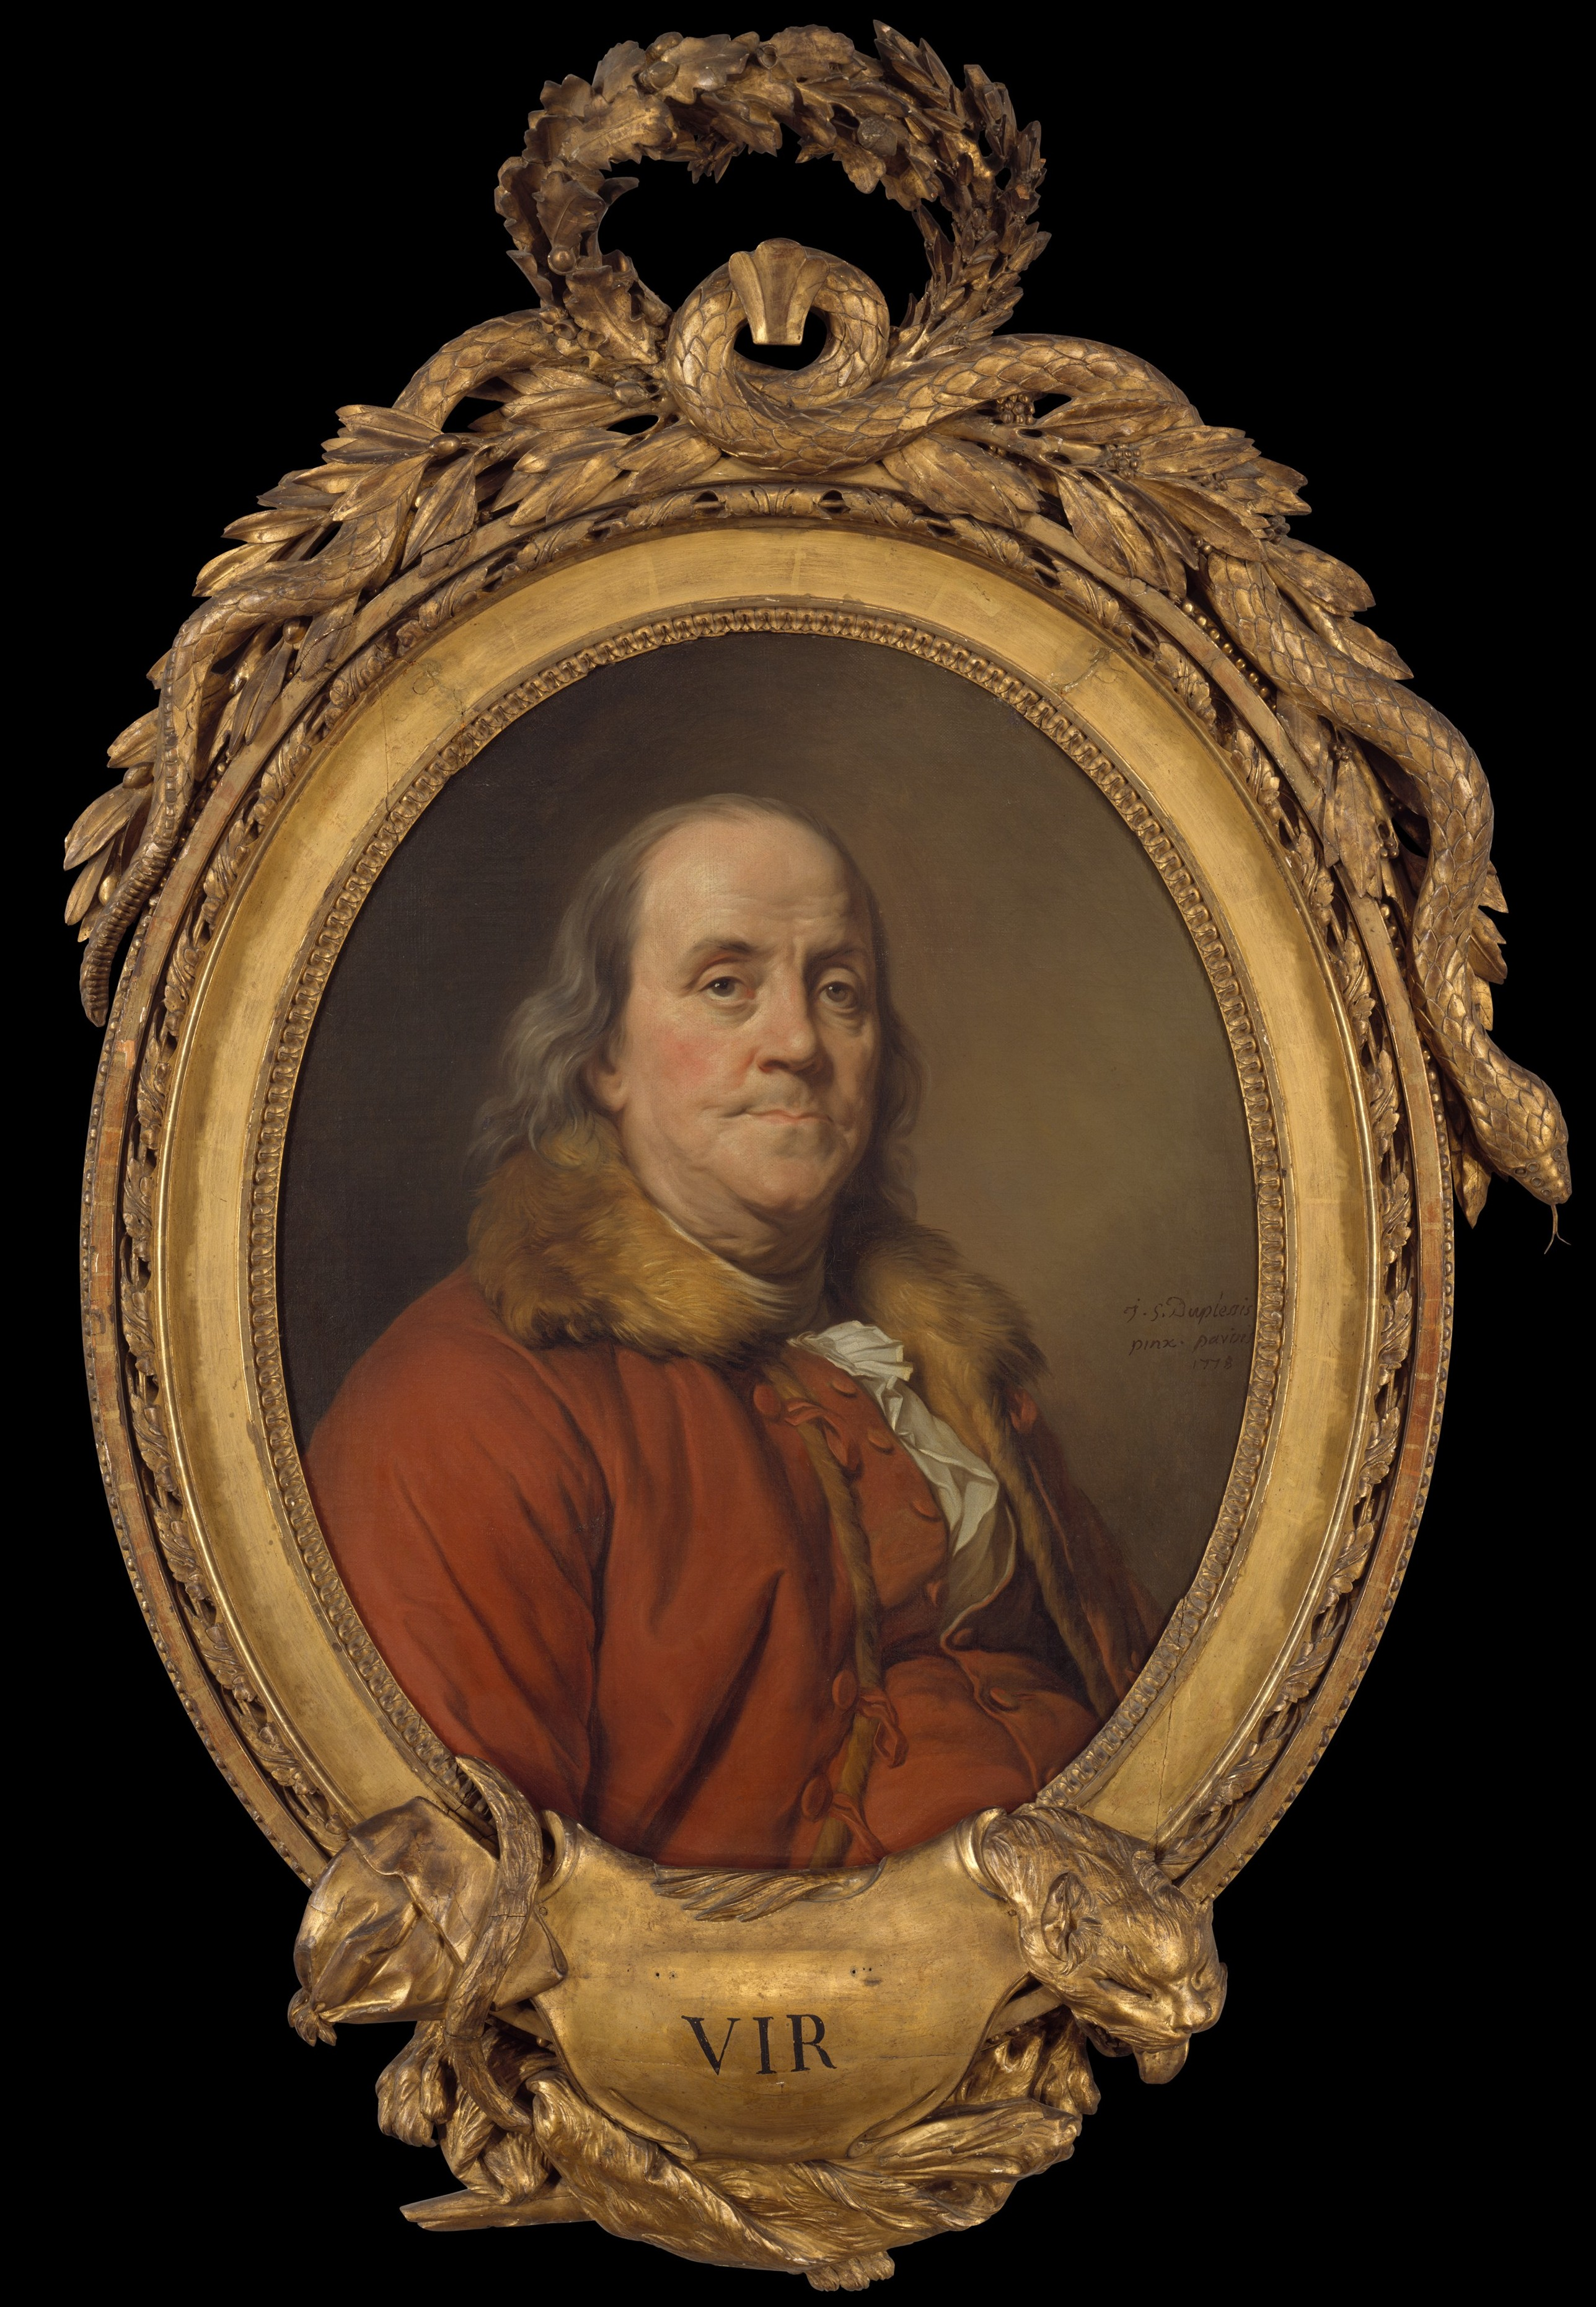 Exhibition Benjamin Franklin Portraits By Duplessis